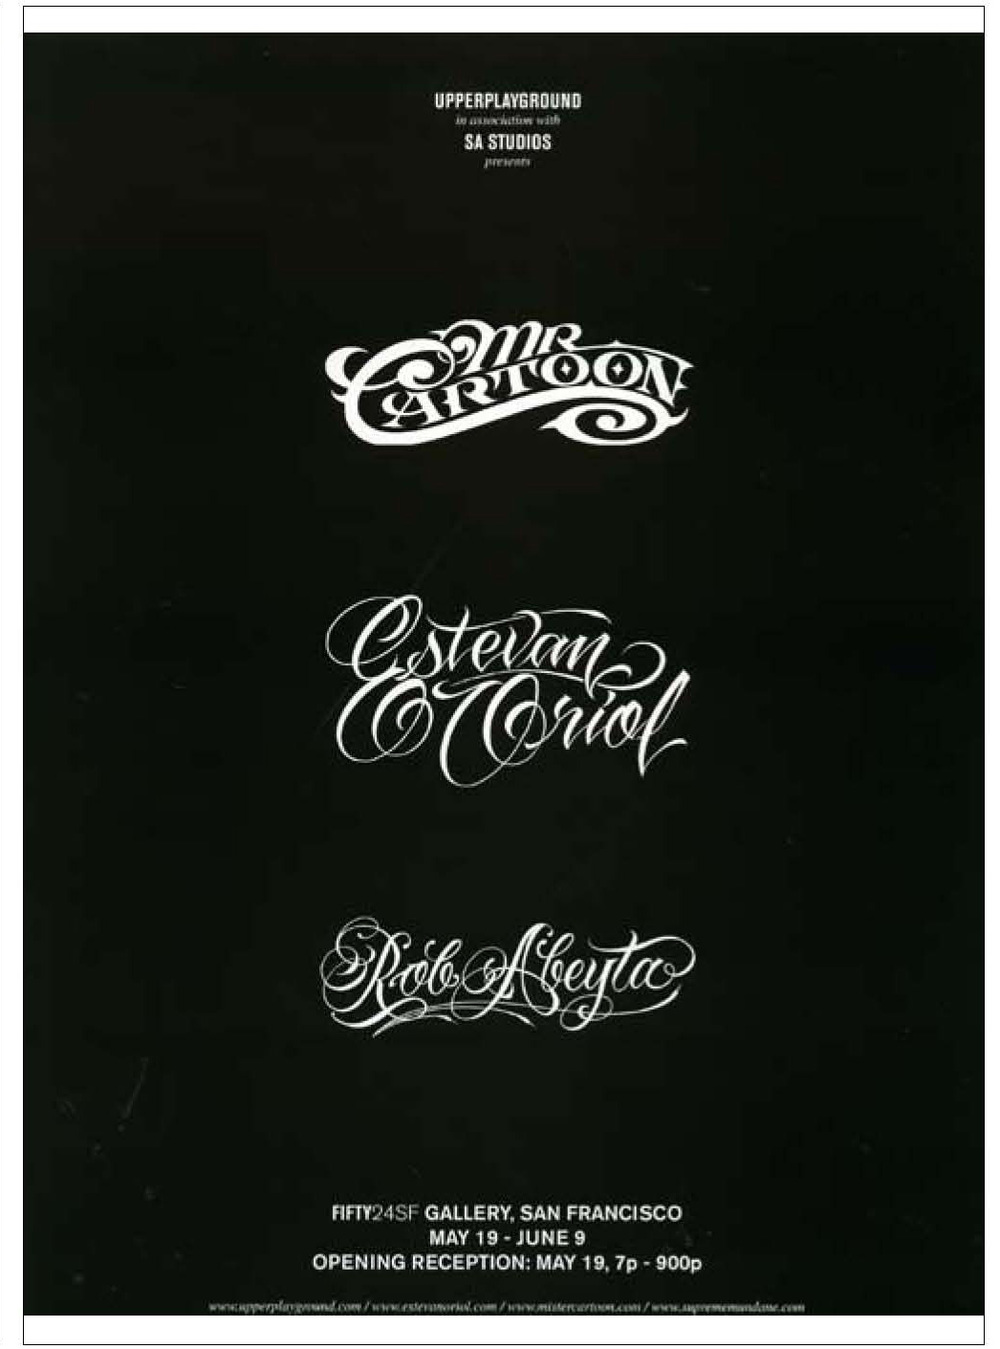 MISTER CARTOON-ESTEVAN ORIOL-ROB ABEYTA JR.-FIFTY24SF